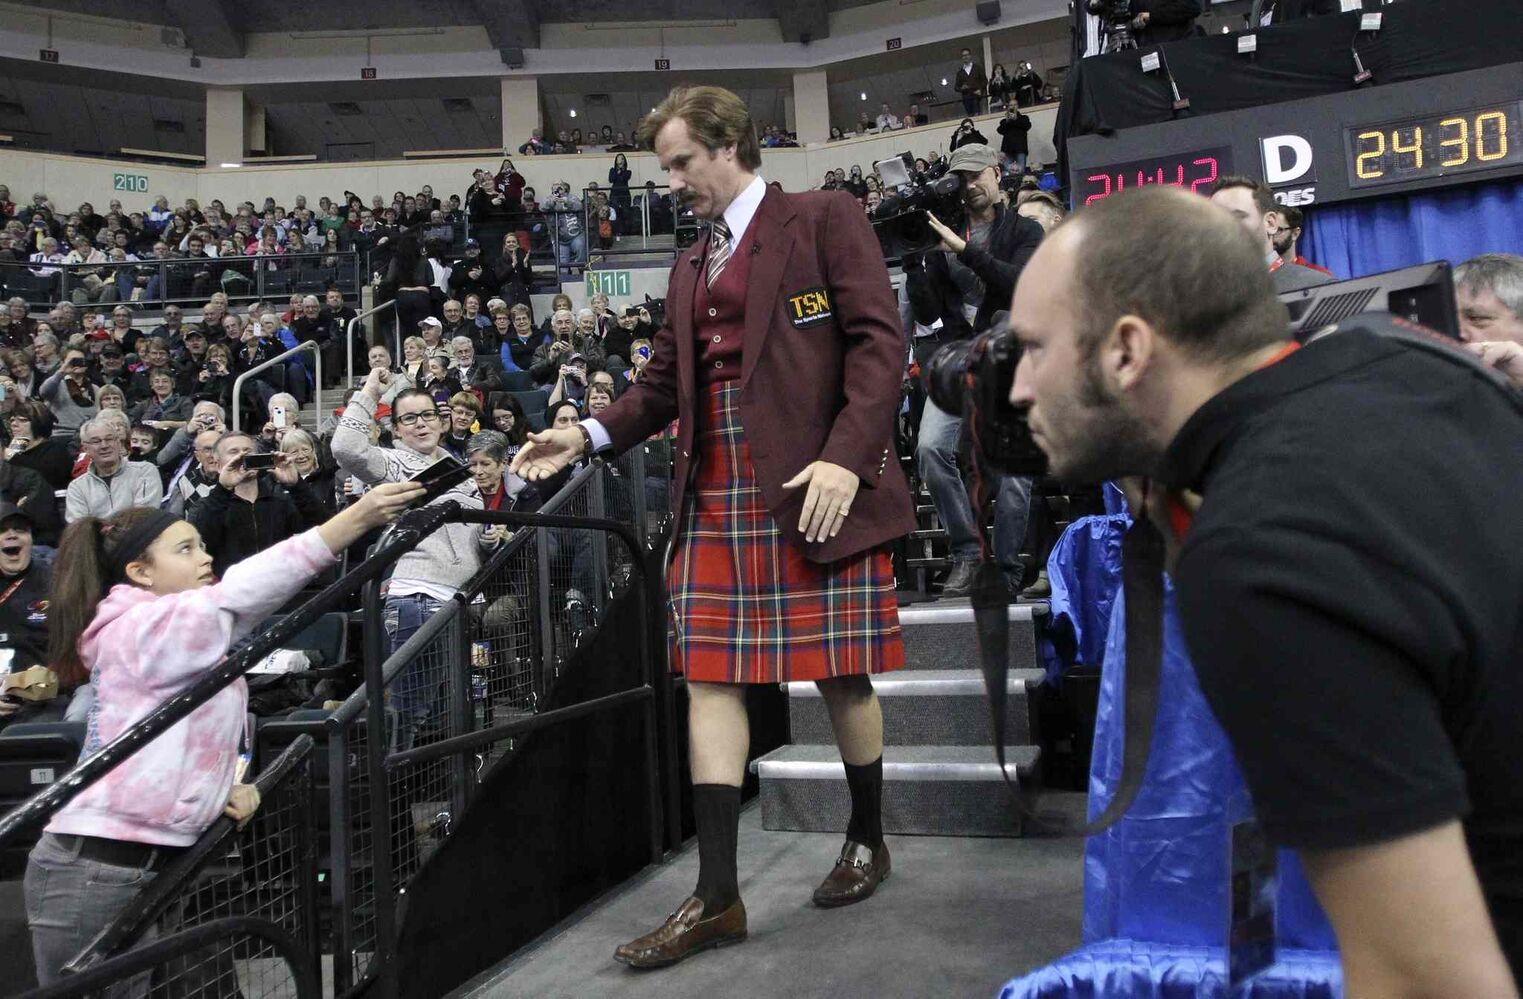 Ron Burgundy mingles with curling fans at the MTS Centre. (Mike Deal / Winnipeg Free Press)